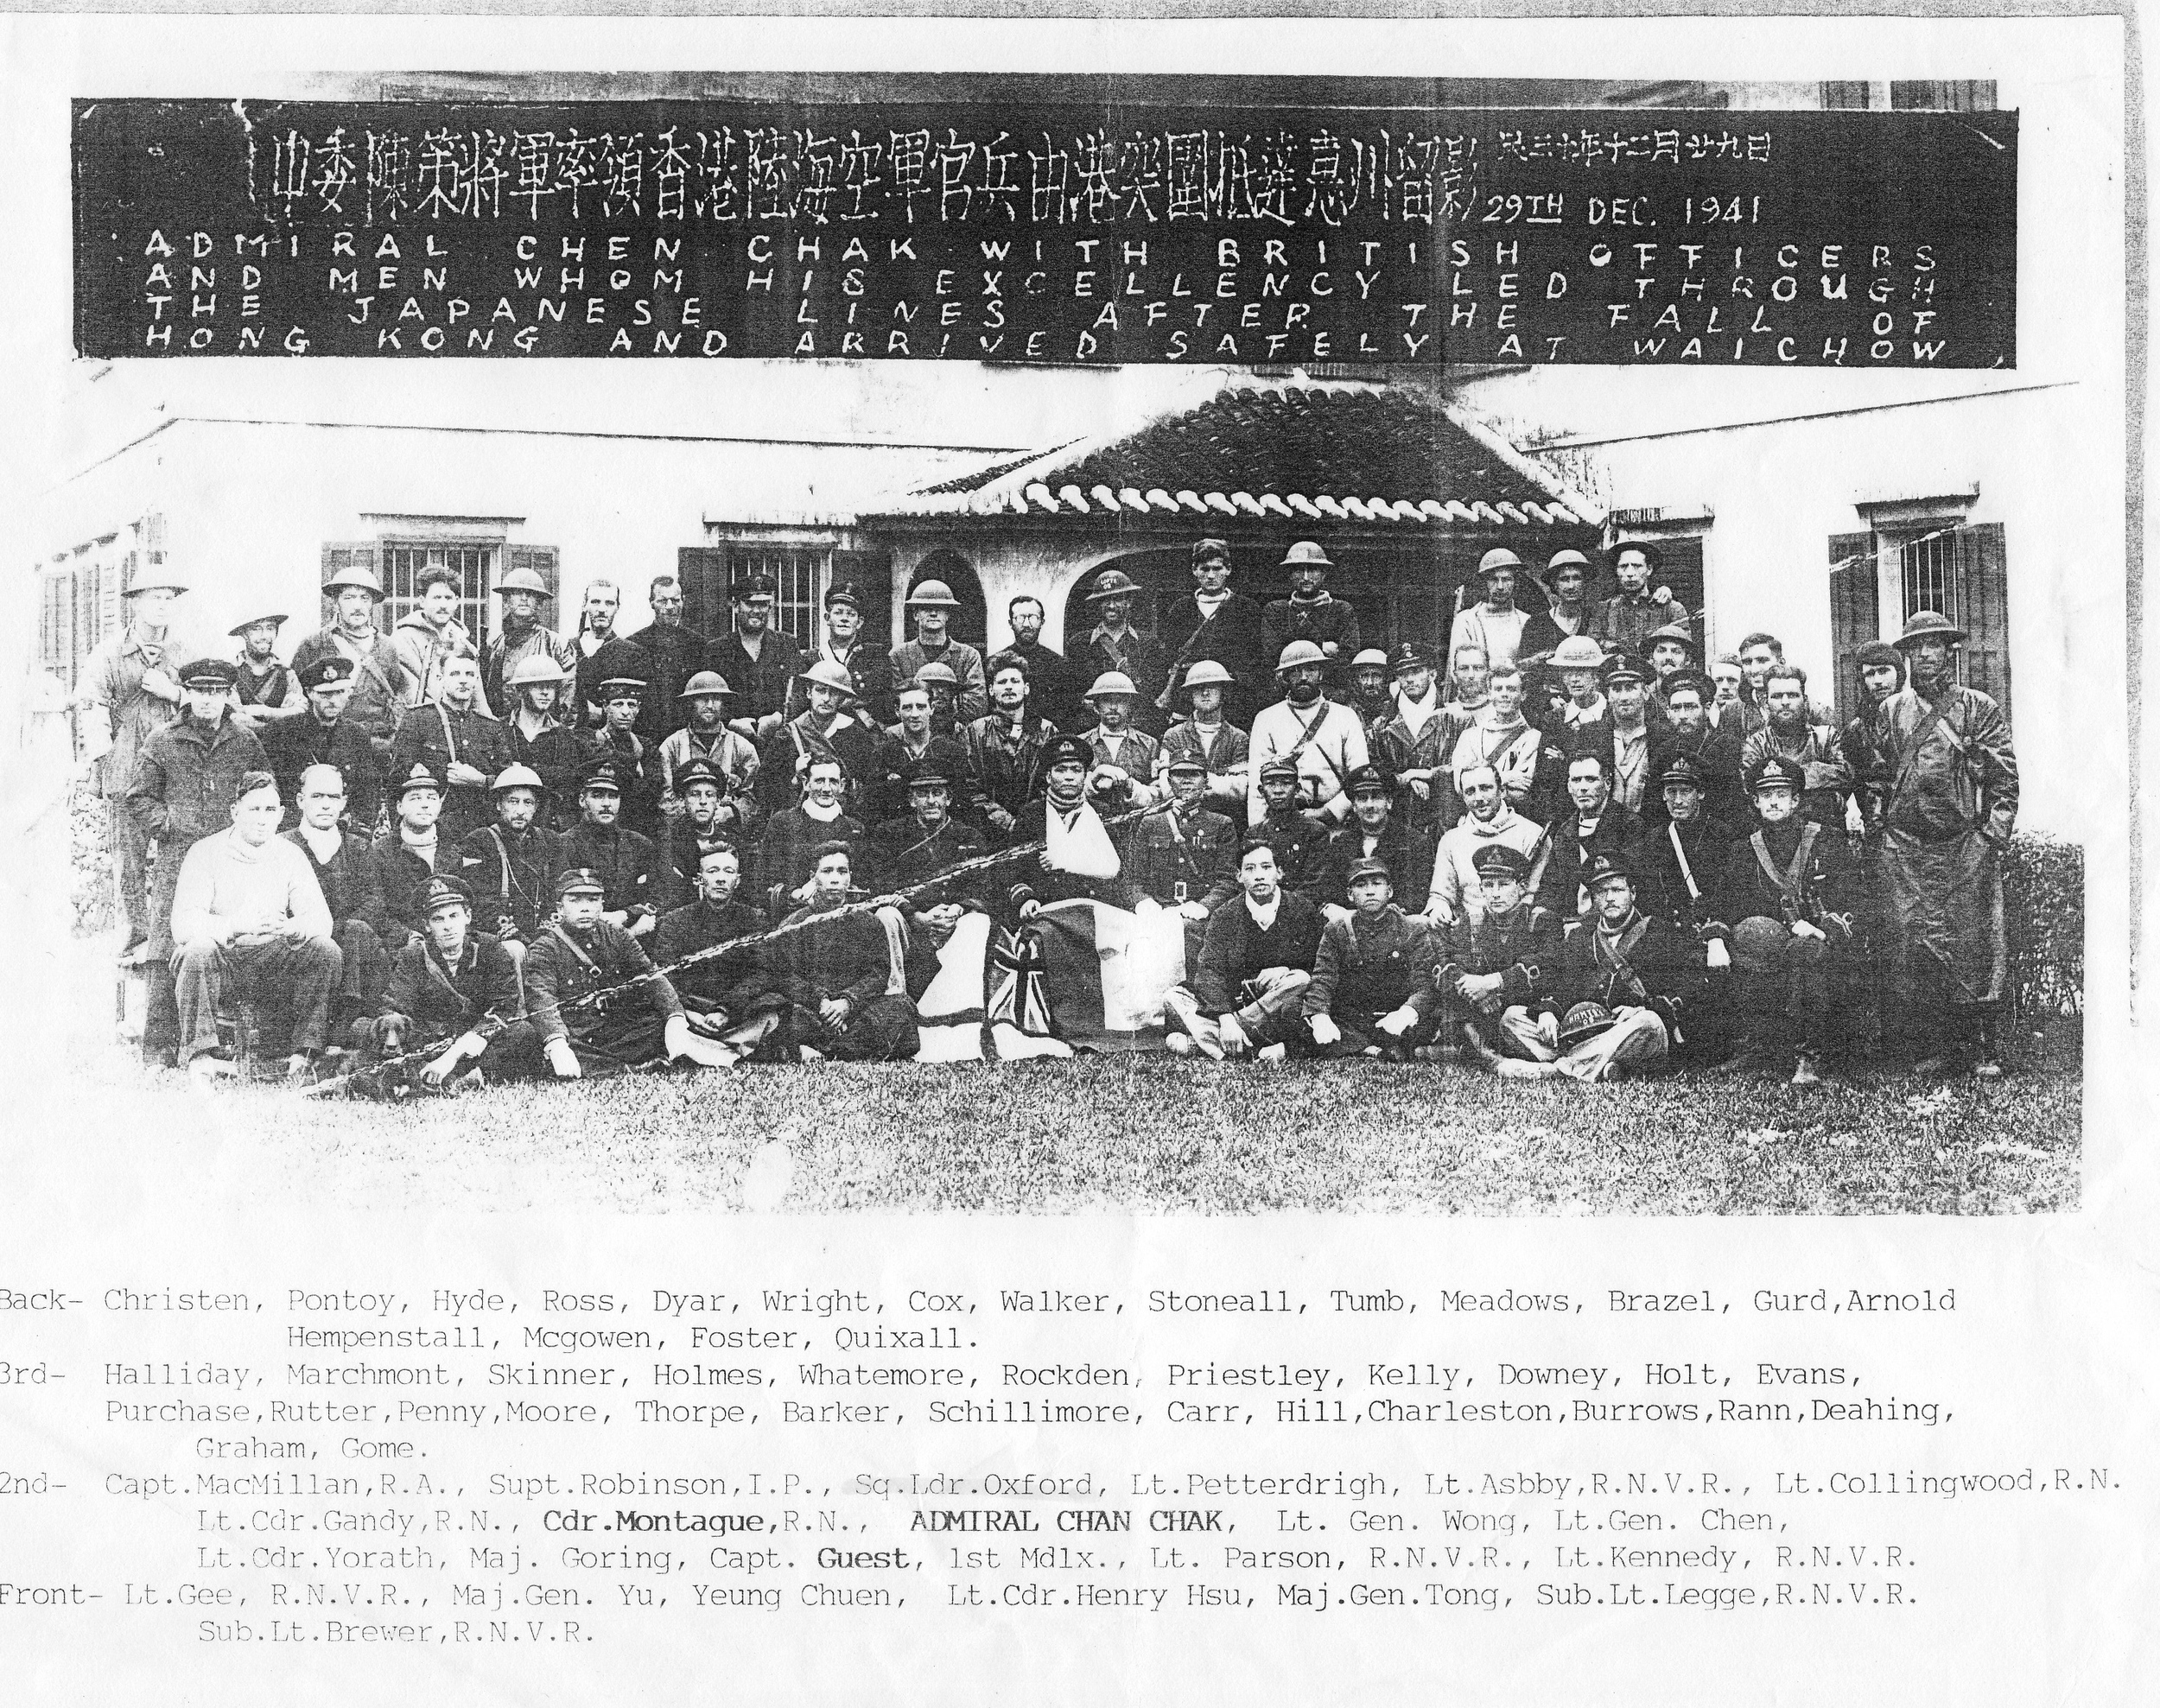 The escape group in Huizhou, with Max (second row, third from left), December 30, 1941